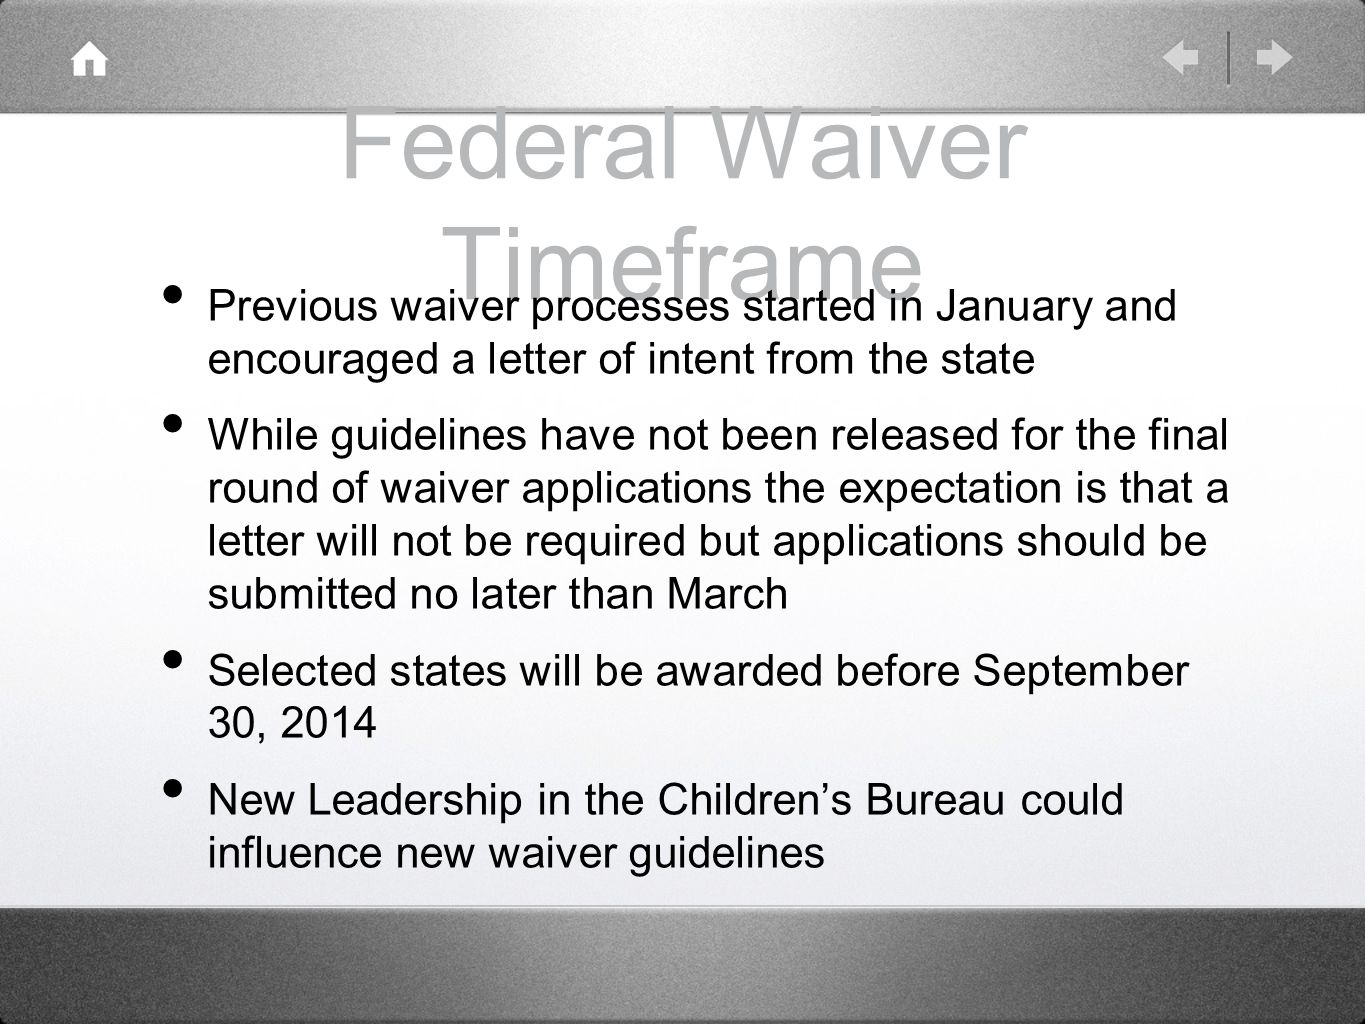 Federal Waiver Timeframe Previous waiver processes started in January and encouraged a letter of intent from the state While guidelines have not been released for the final round of waiver applications the expectation is that a letter will not be required but applications should be submitted no later than March Selected states will be awarded before September 30, 2014 New Leadership in the Children's Bureau could influence new waiver guidelines